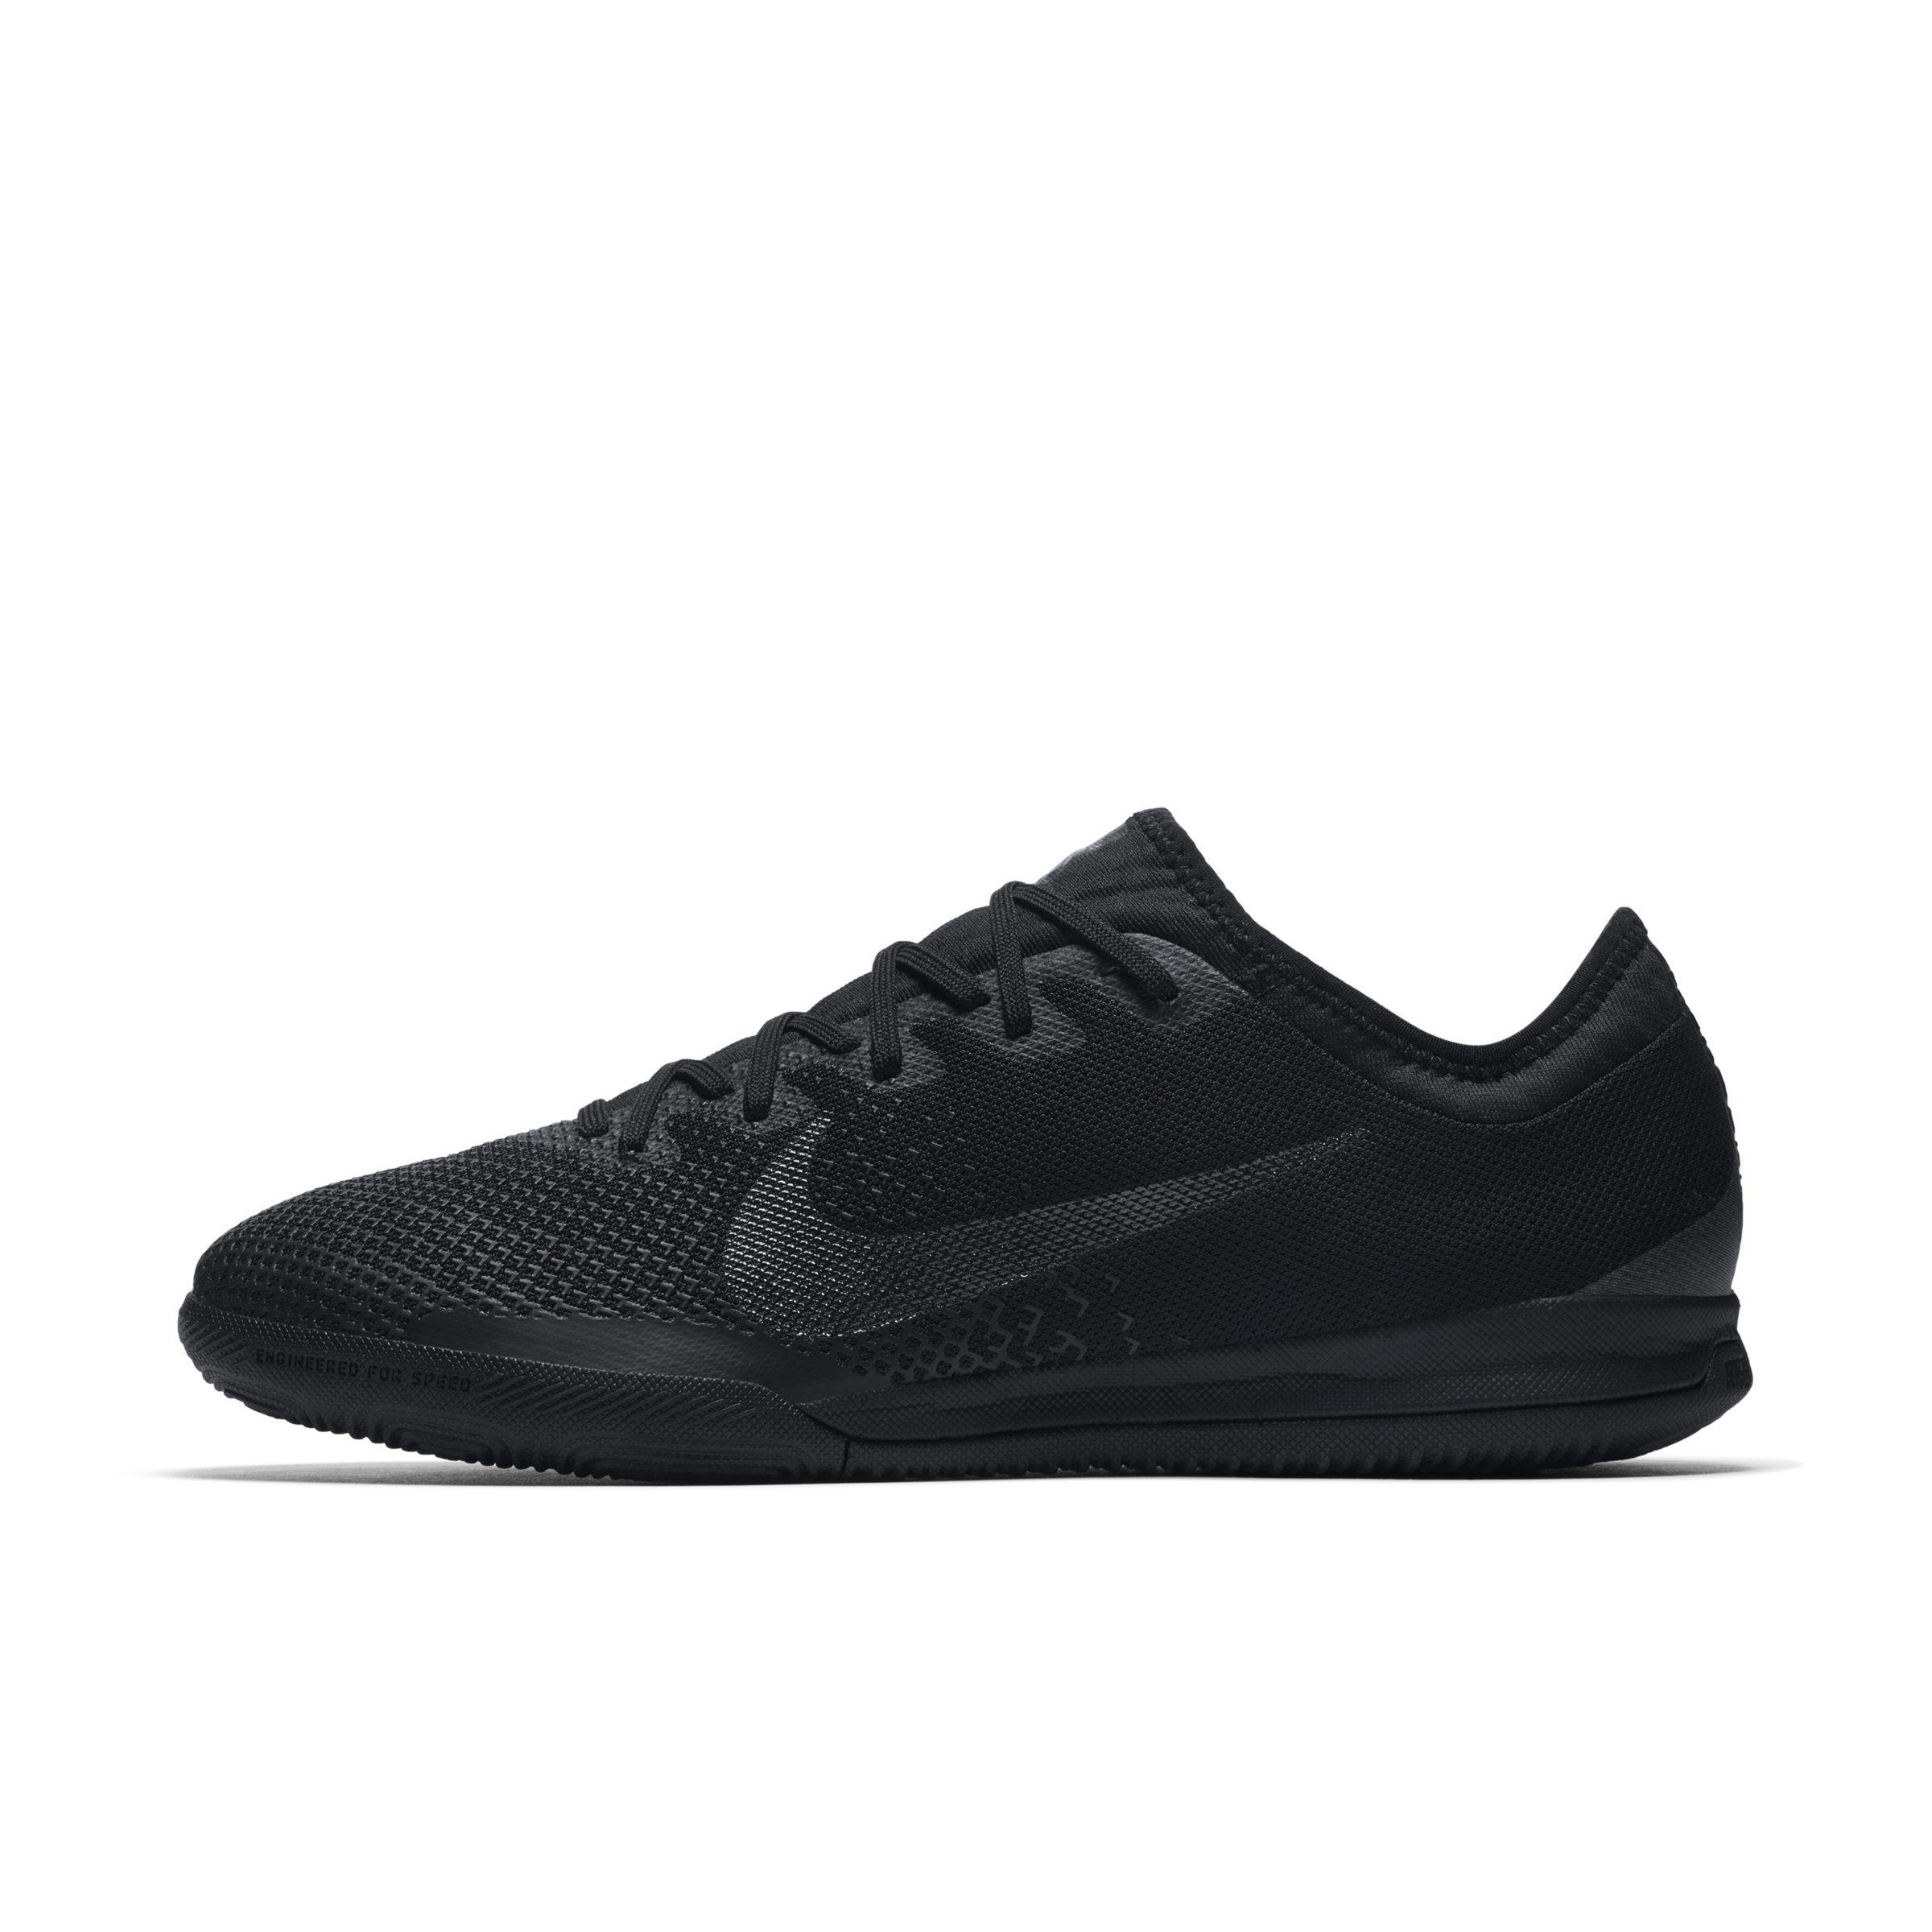 official photos 4eac2 3369e Nike Mercurialx Vapor Xii Pro Indoor/court Football Shoe in Black - Lyst